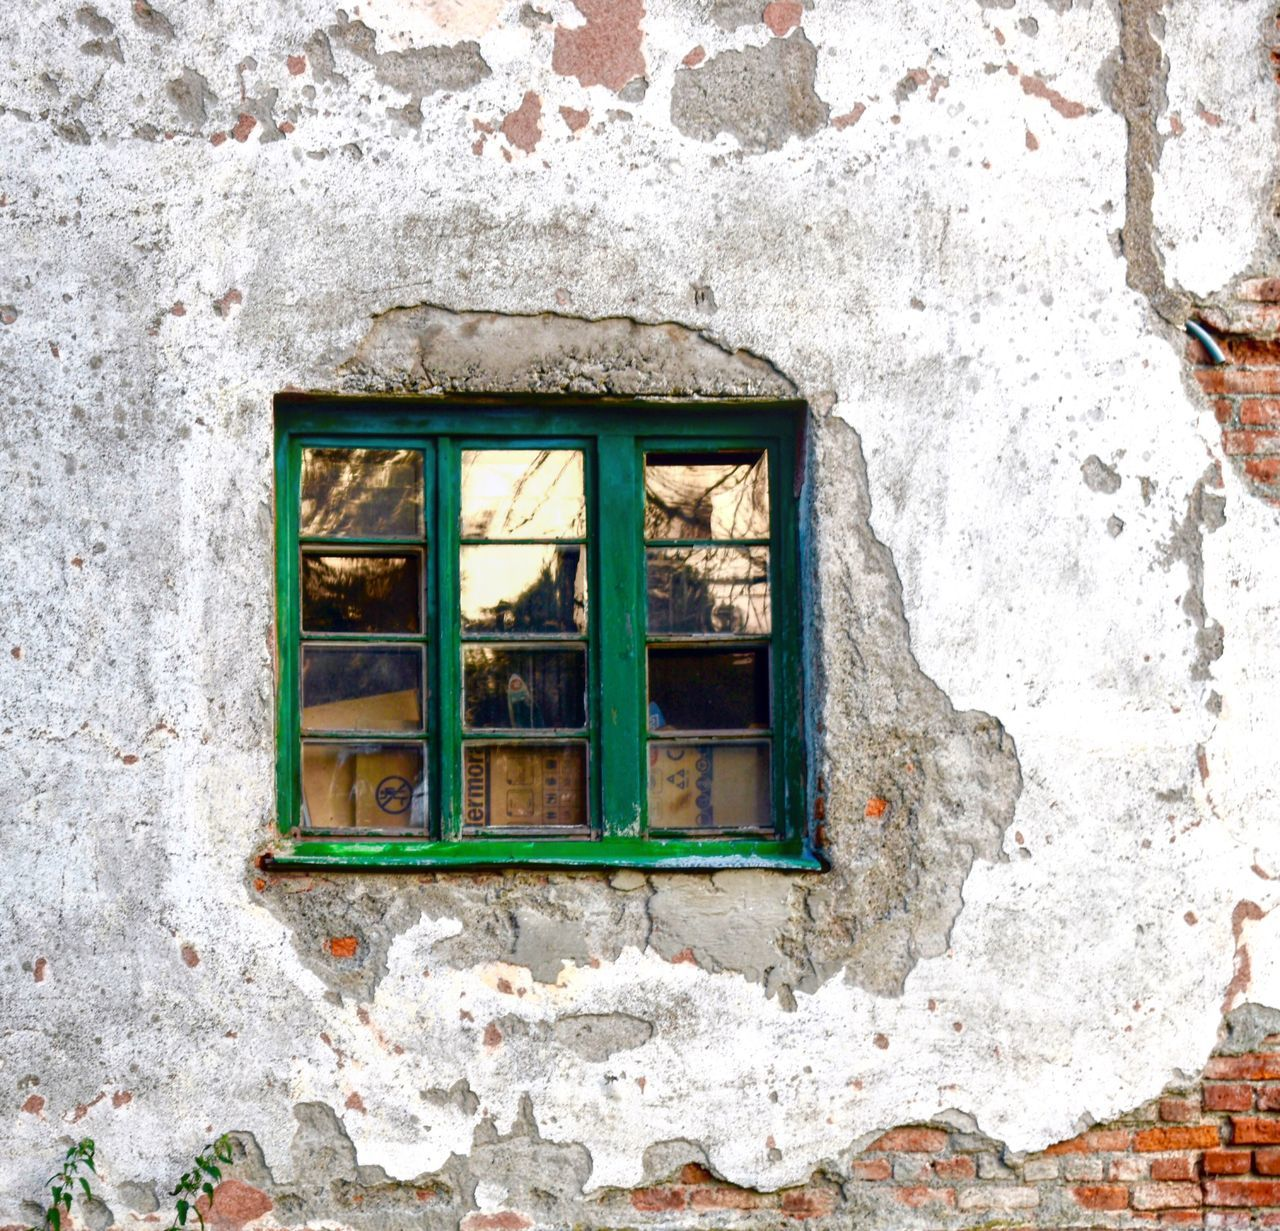 window, architecture, built structure, day, building exterior, no people, outdoors, close-up